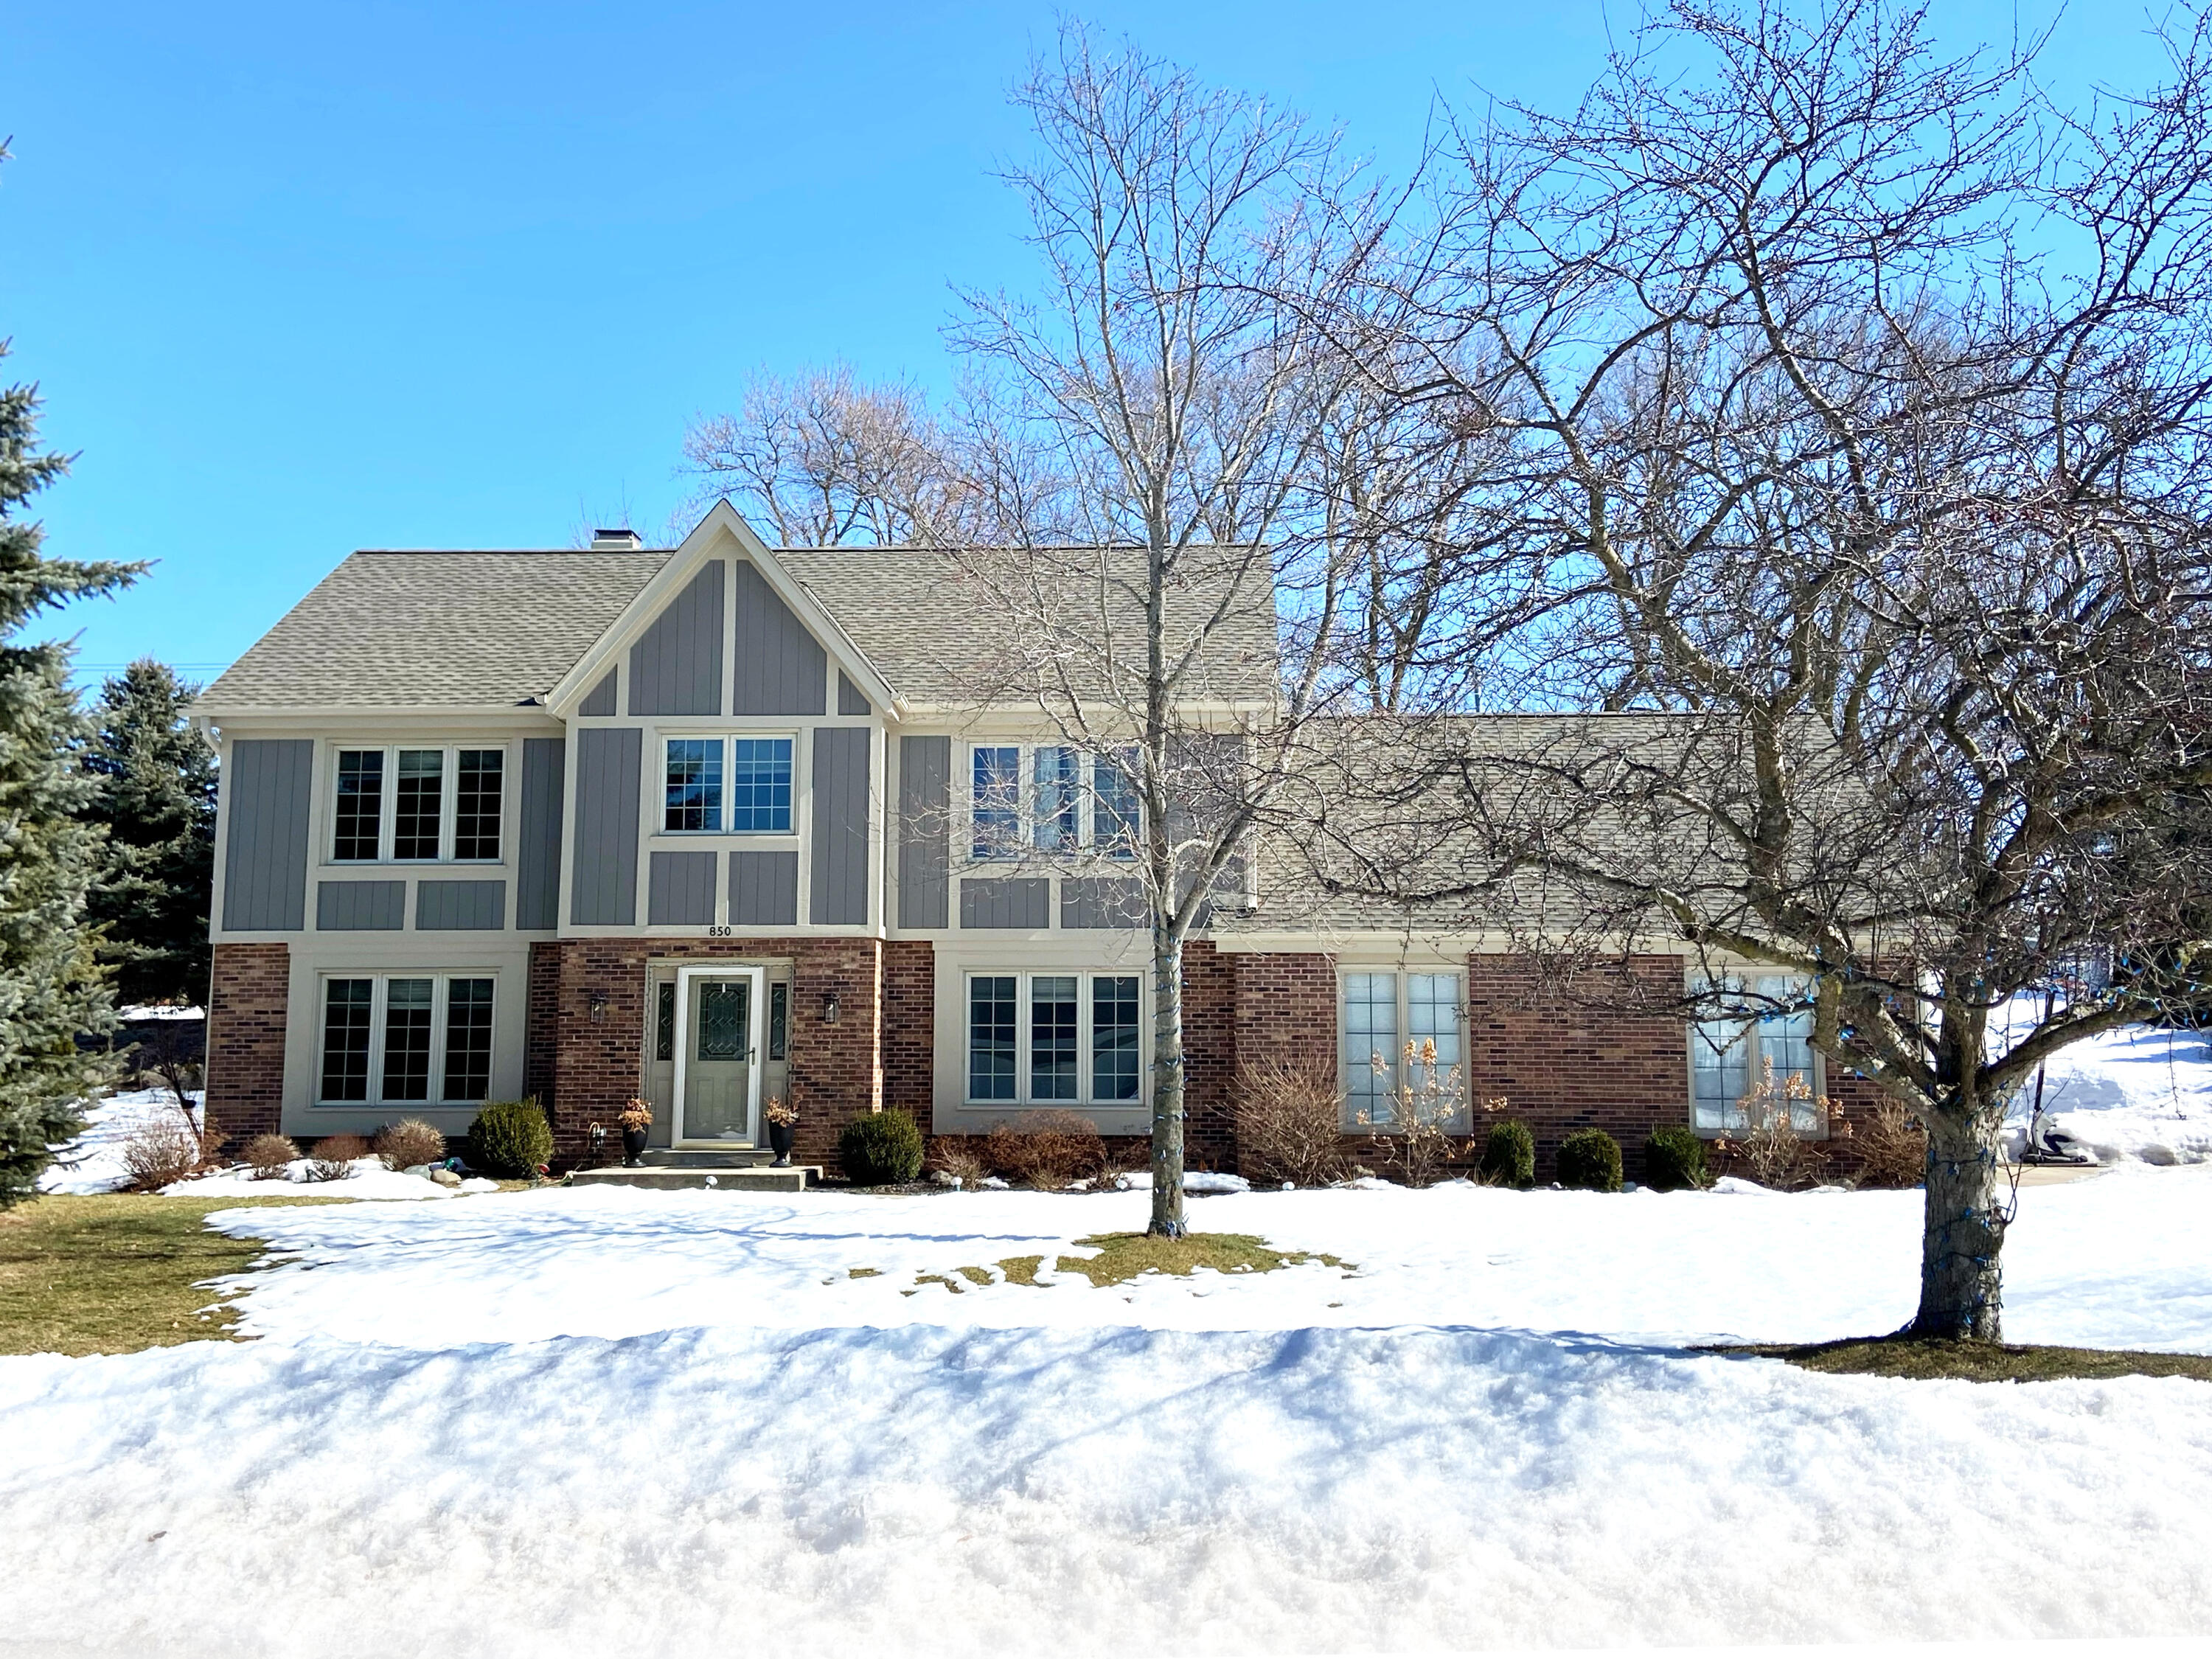 Photo of 850 Calico Ct, Waukesha, WI 53186